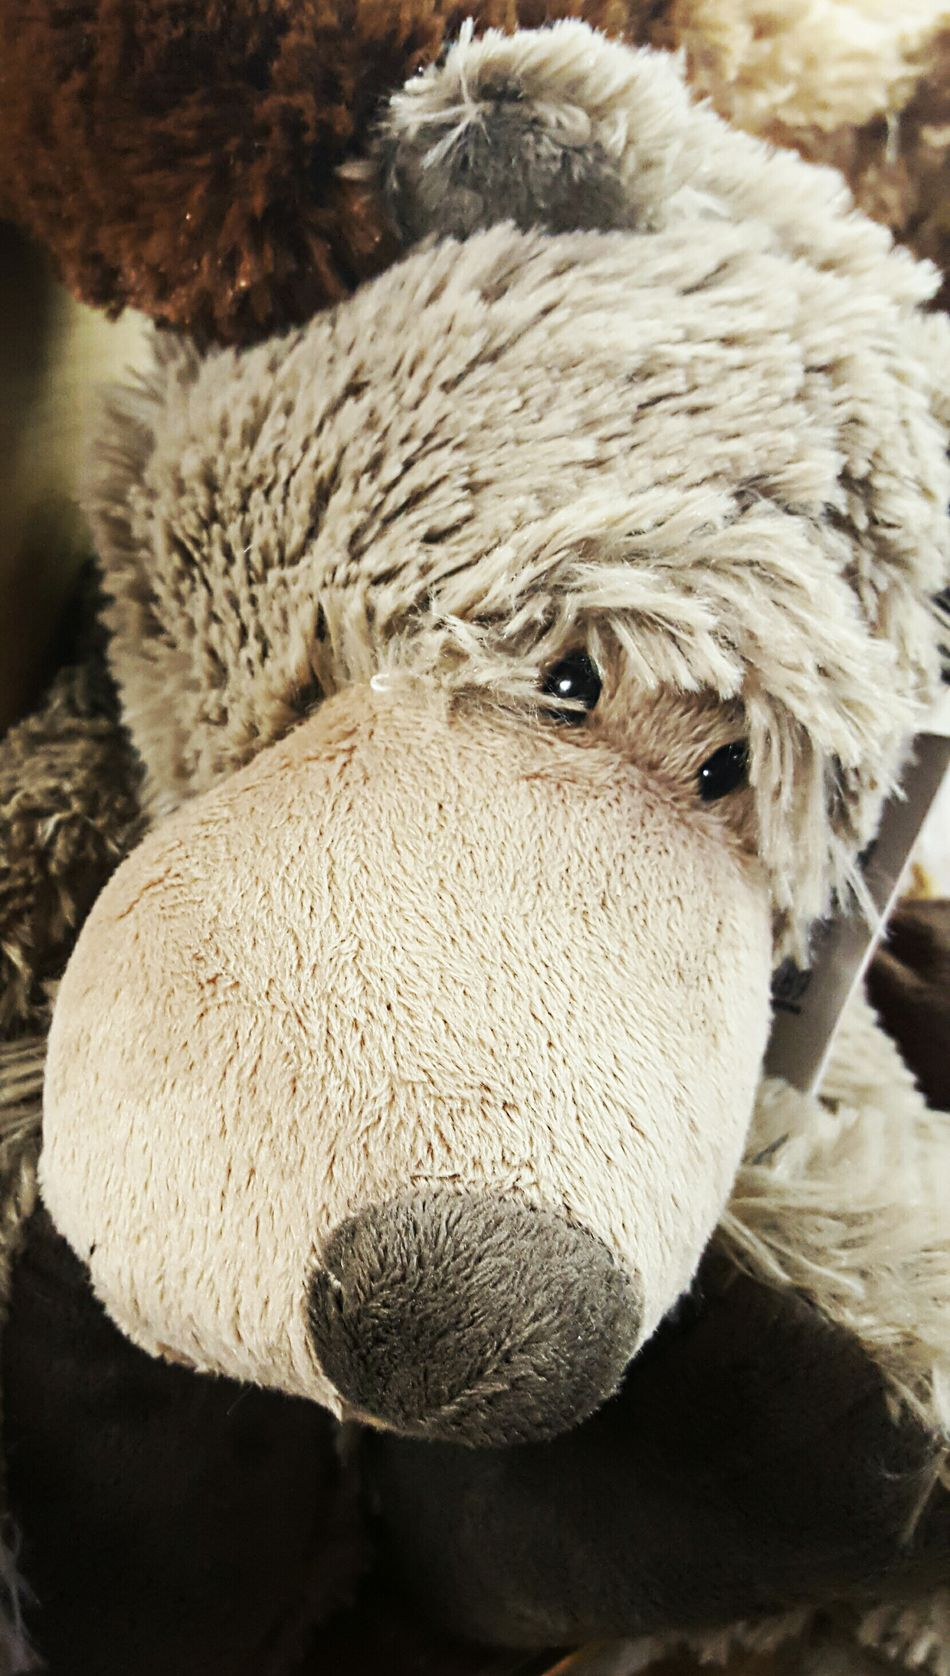 Cute stuffed animal Close-up No People November 2016 For Kids Close-upFor Adults Store On Main Street Lots To See One Animal Animal Themes Nature Sheep One Animal No People Downtown